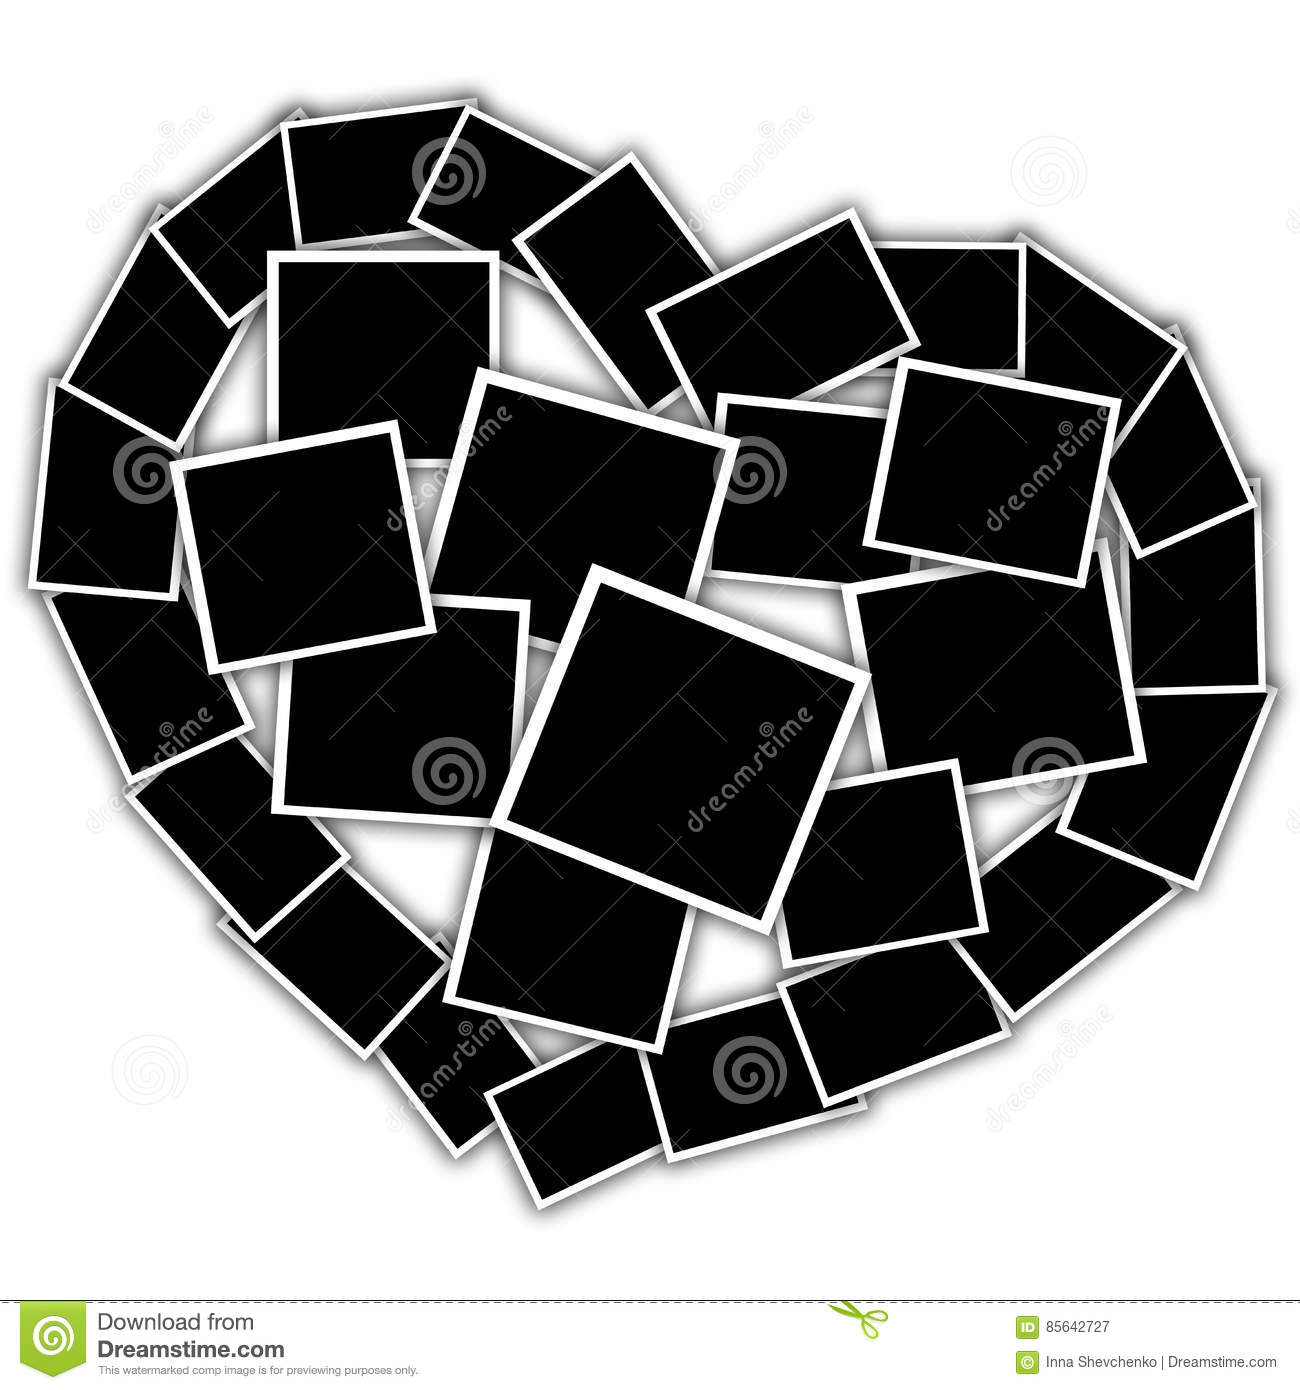 Collage In The Shape Of A Heart, Empty Frames Stock Photo - Image ...